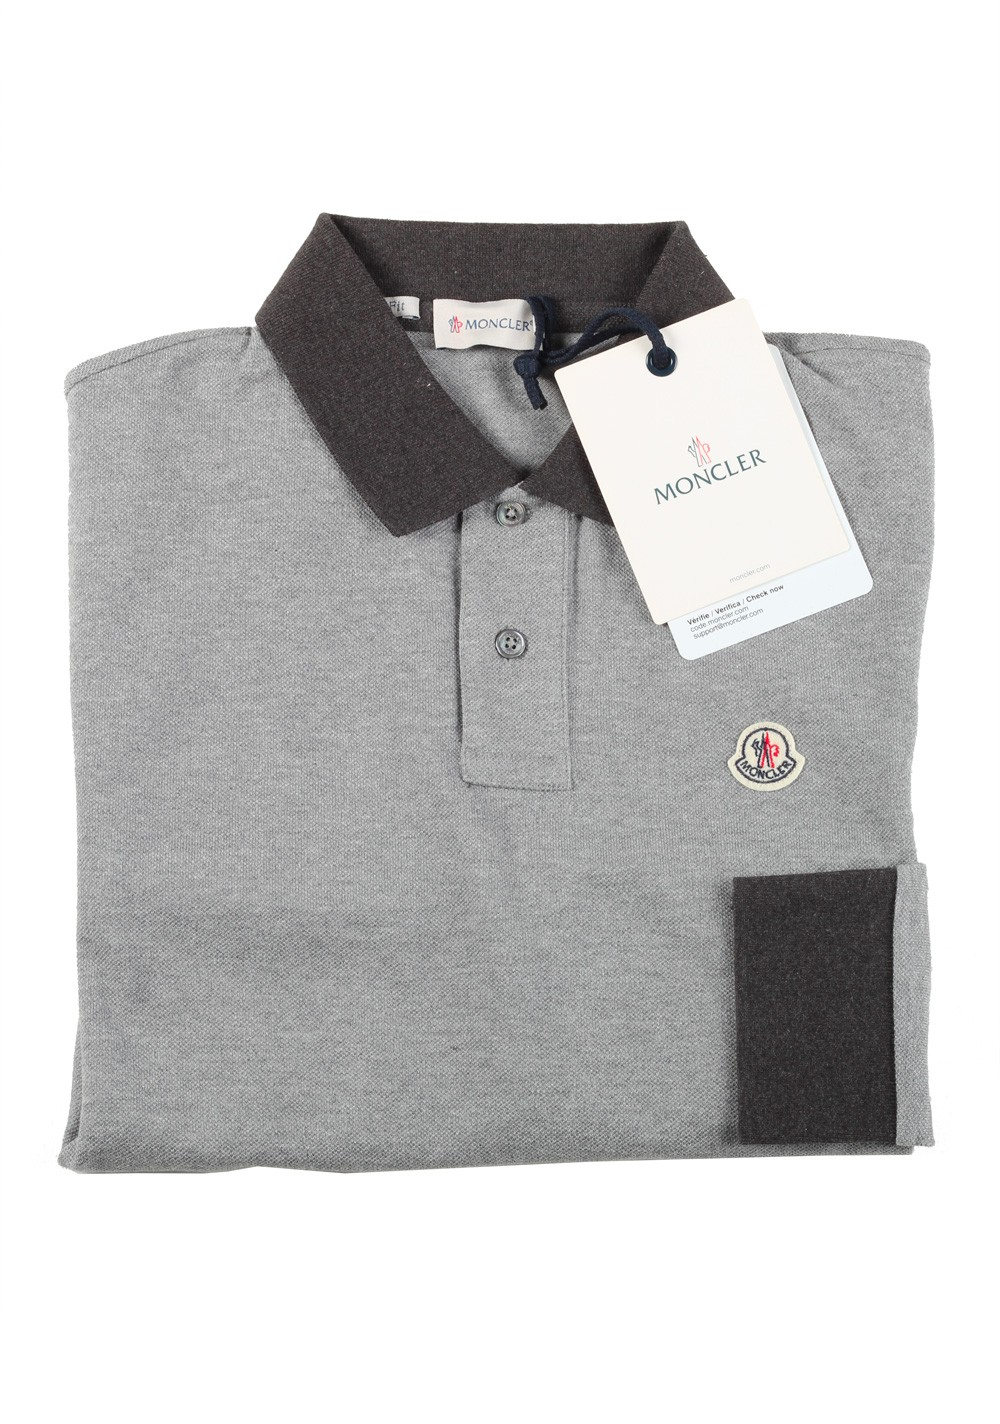 Moncler Long sleeve Polo Shirt Size S / 36R U.S. Light Gray | Costume Limité